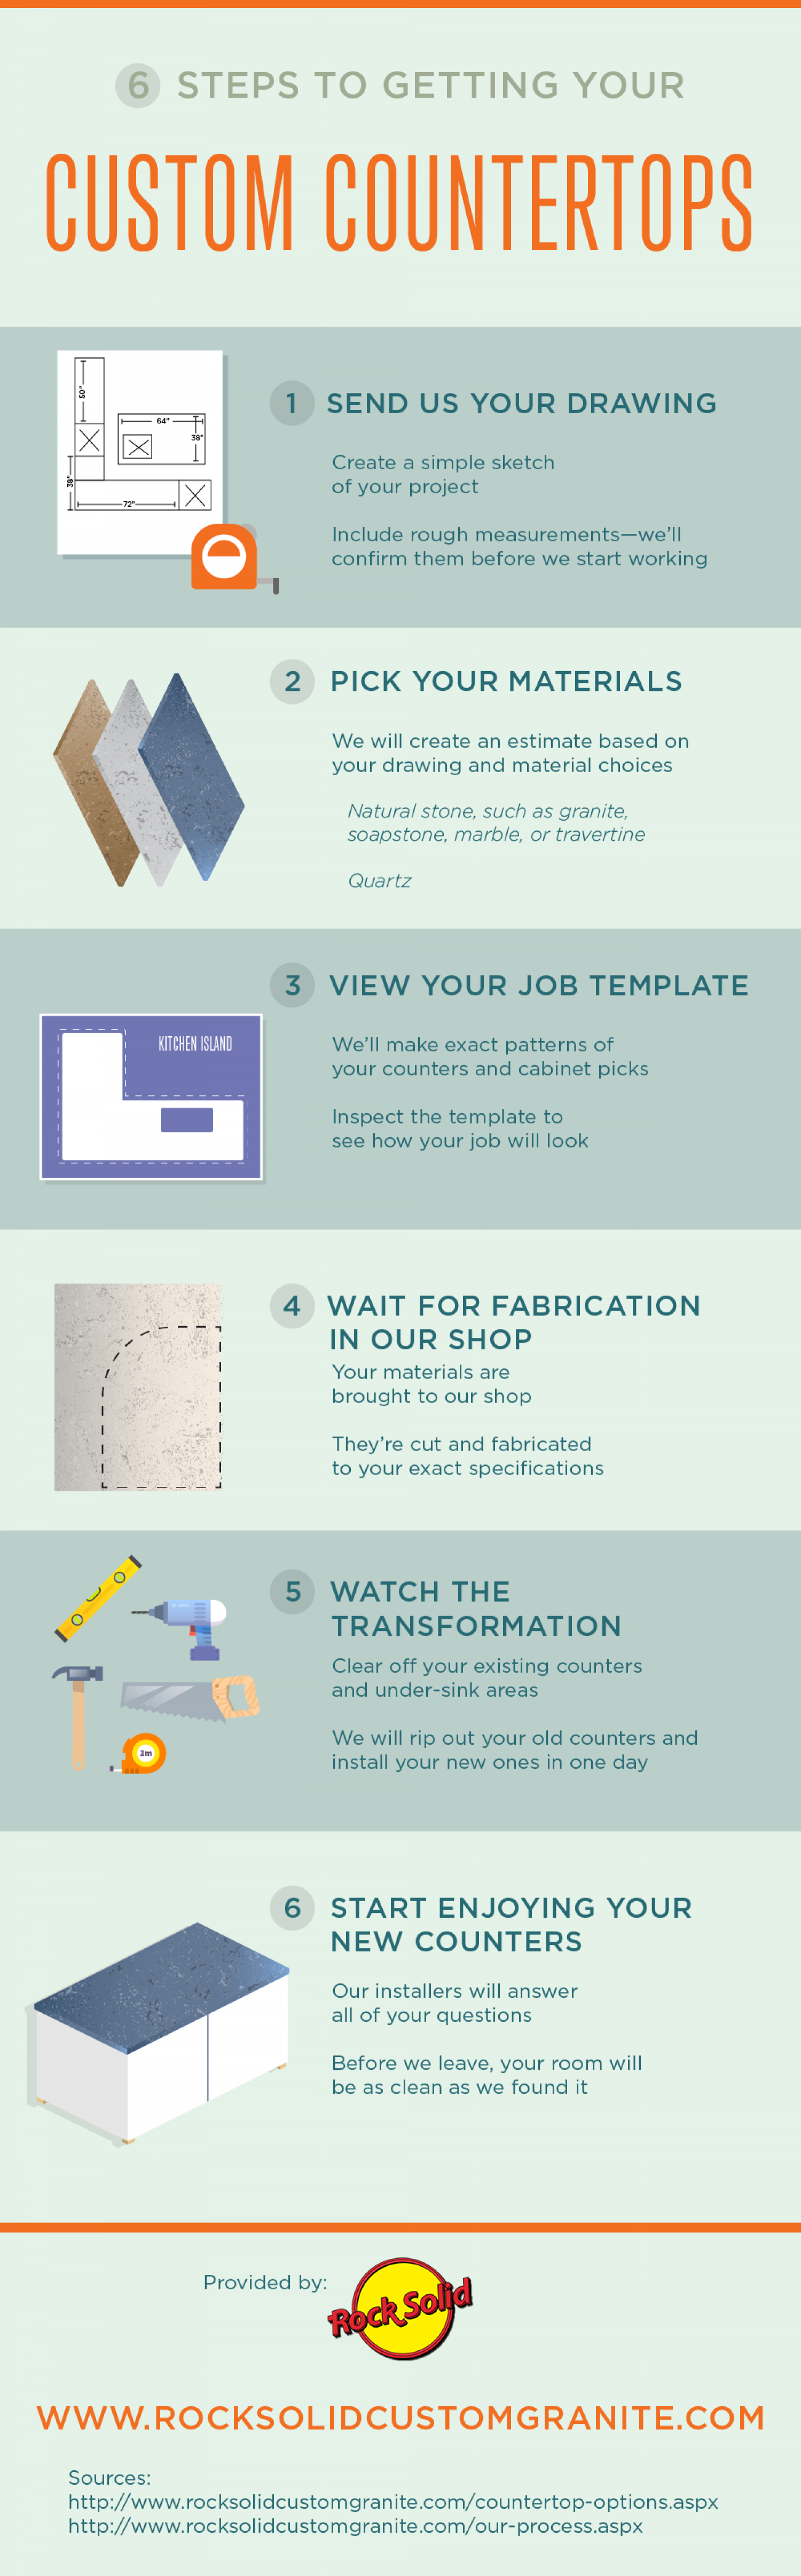 6 Steps to Getting Your Custom Countertops Infographic